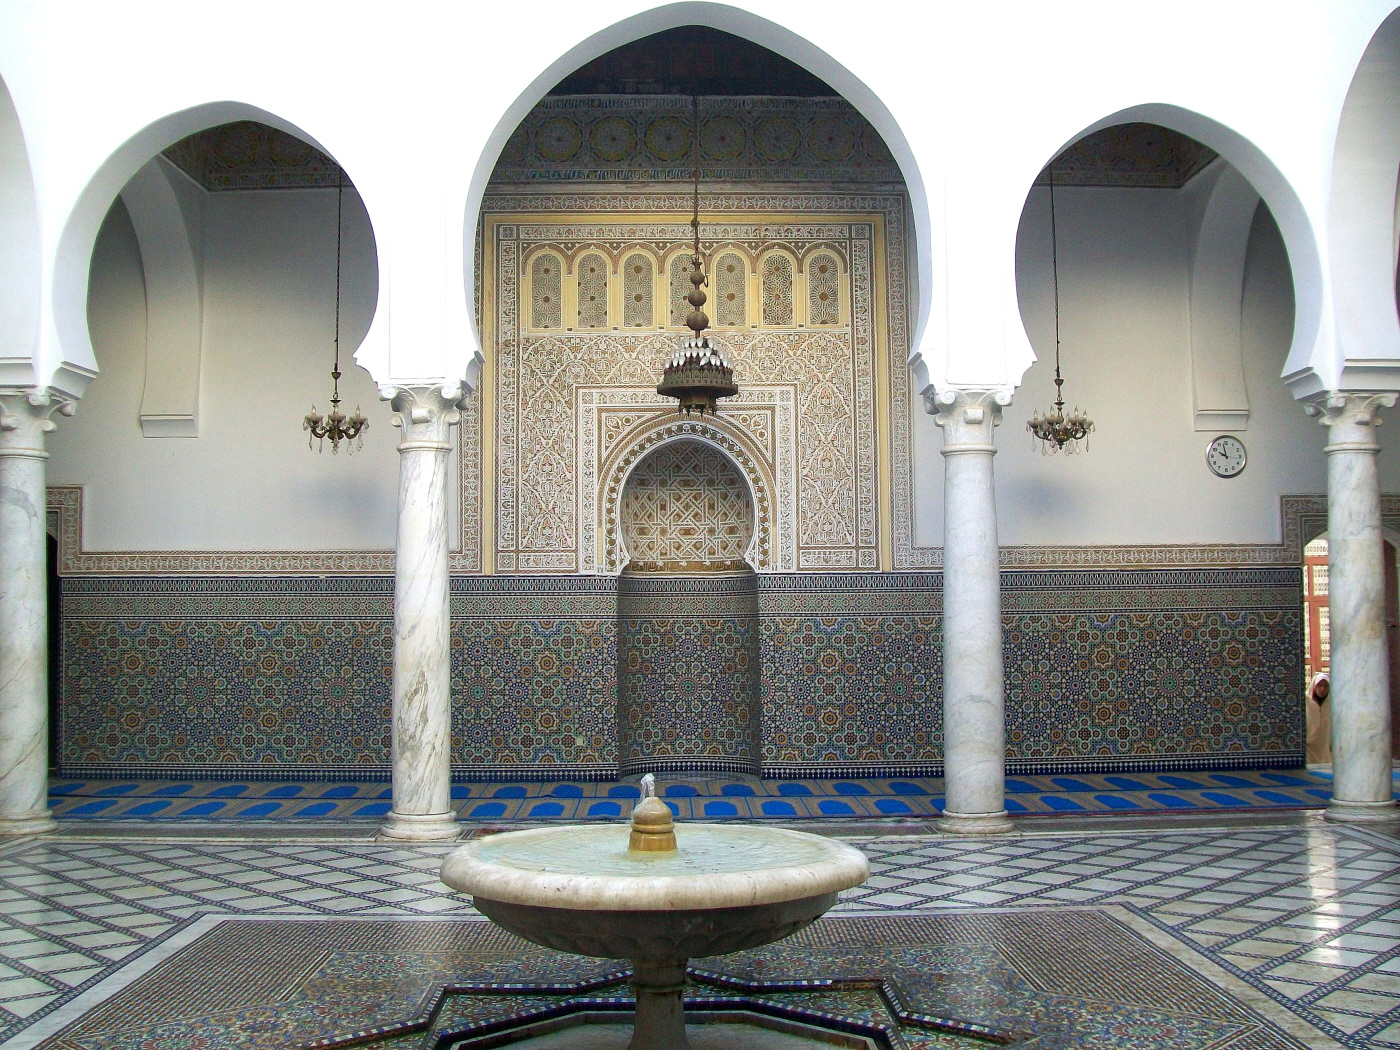 Moulay Idriss Mosque ( Idris ibn Abdillah -the Great, Great Grandson of the Holy Prophet)